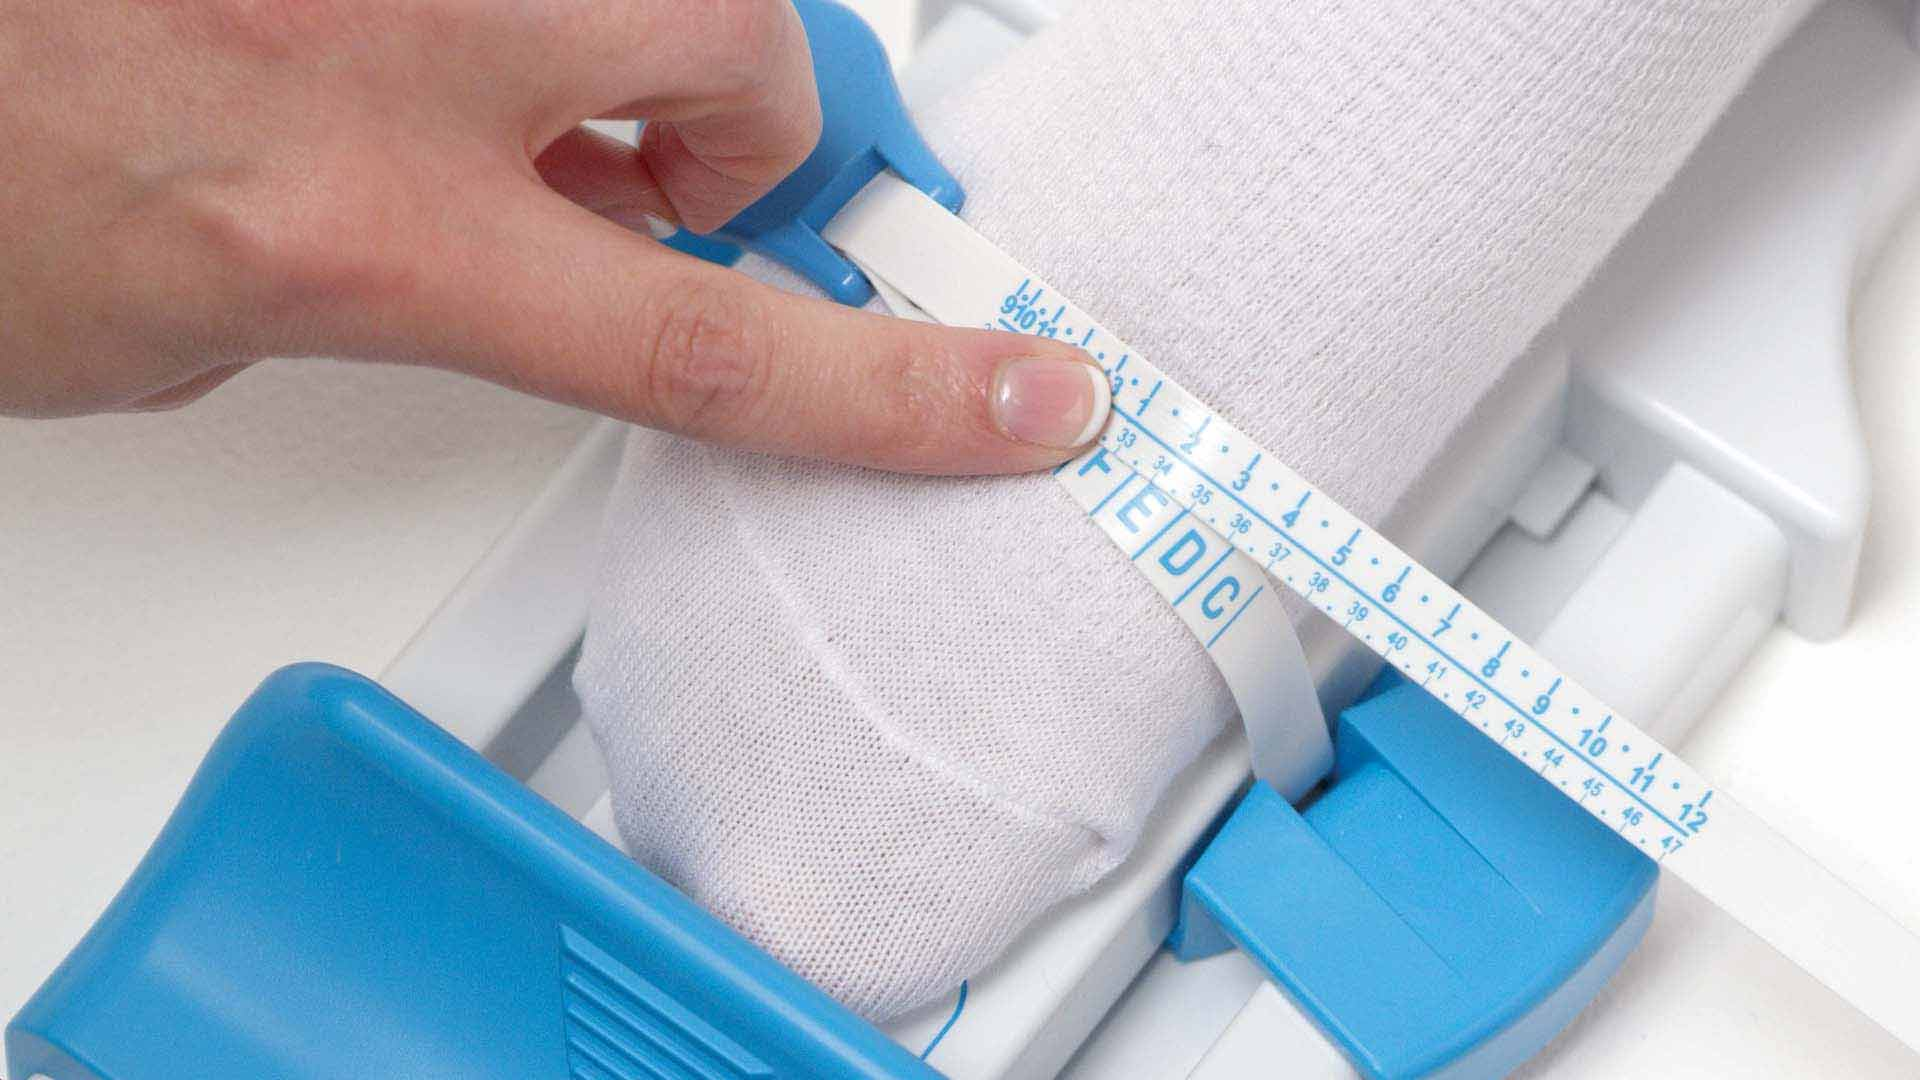 How to use the large measuring gauge - Step 7